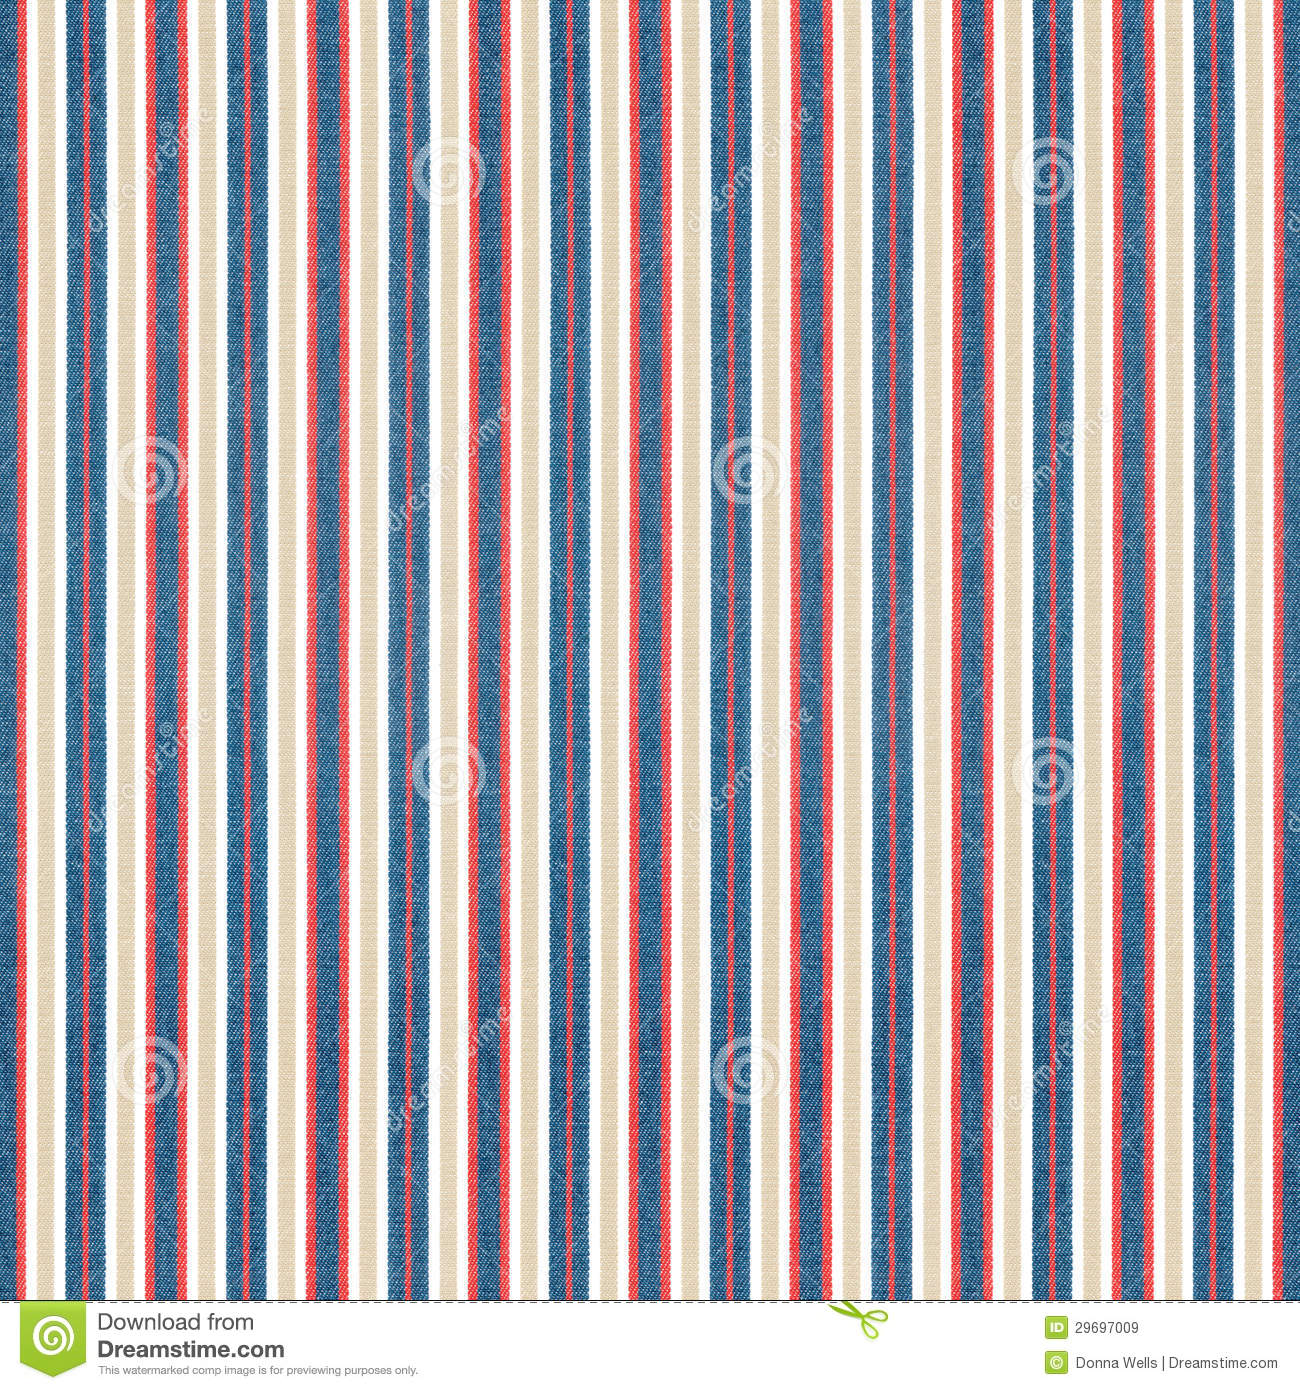 Red Blue Tan Striped Fabric Royalty Free Stock Images - Image ...